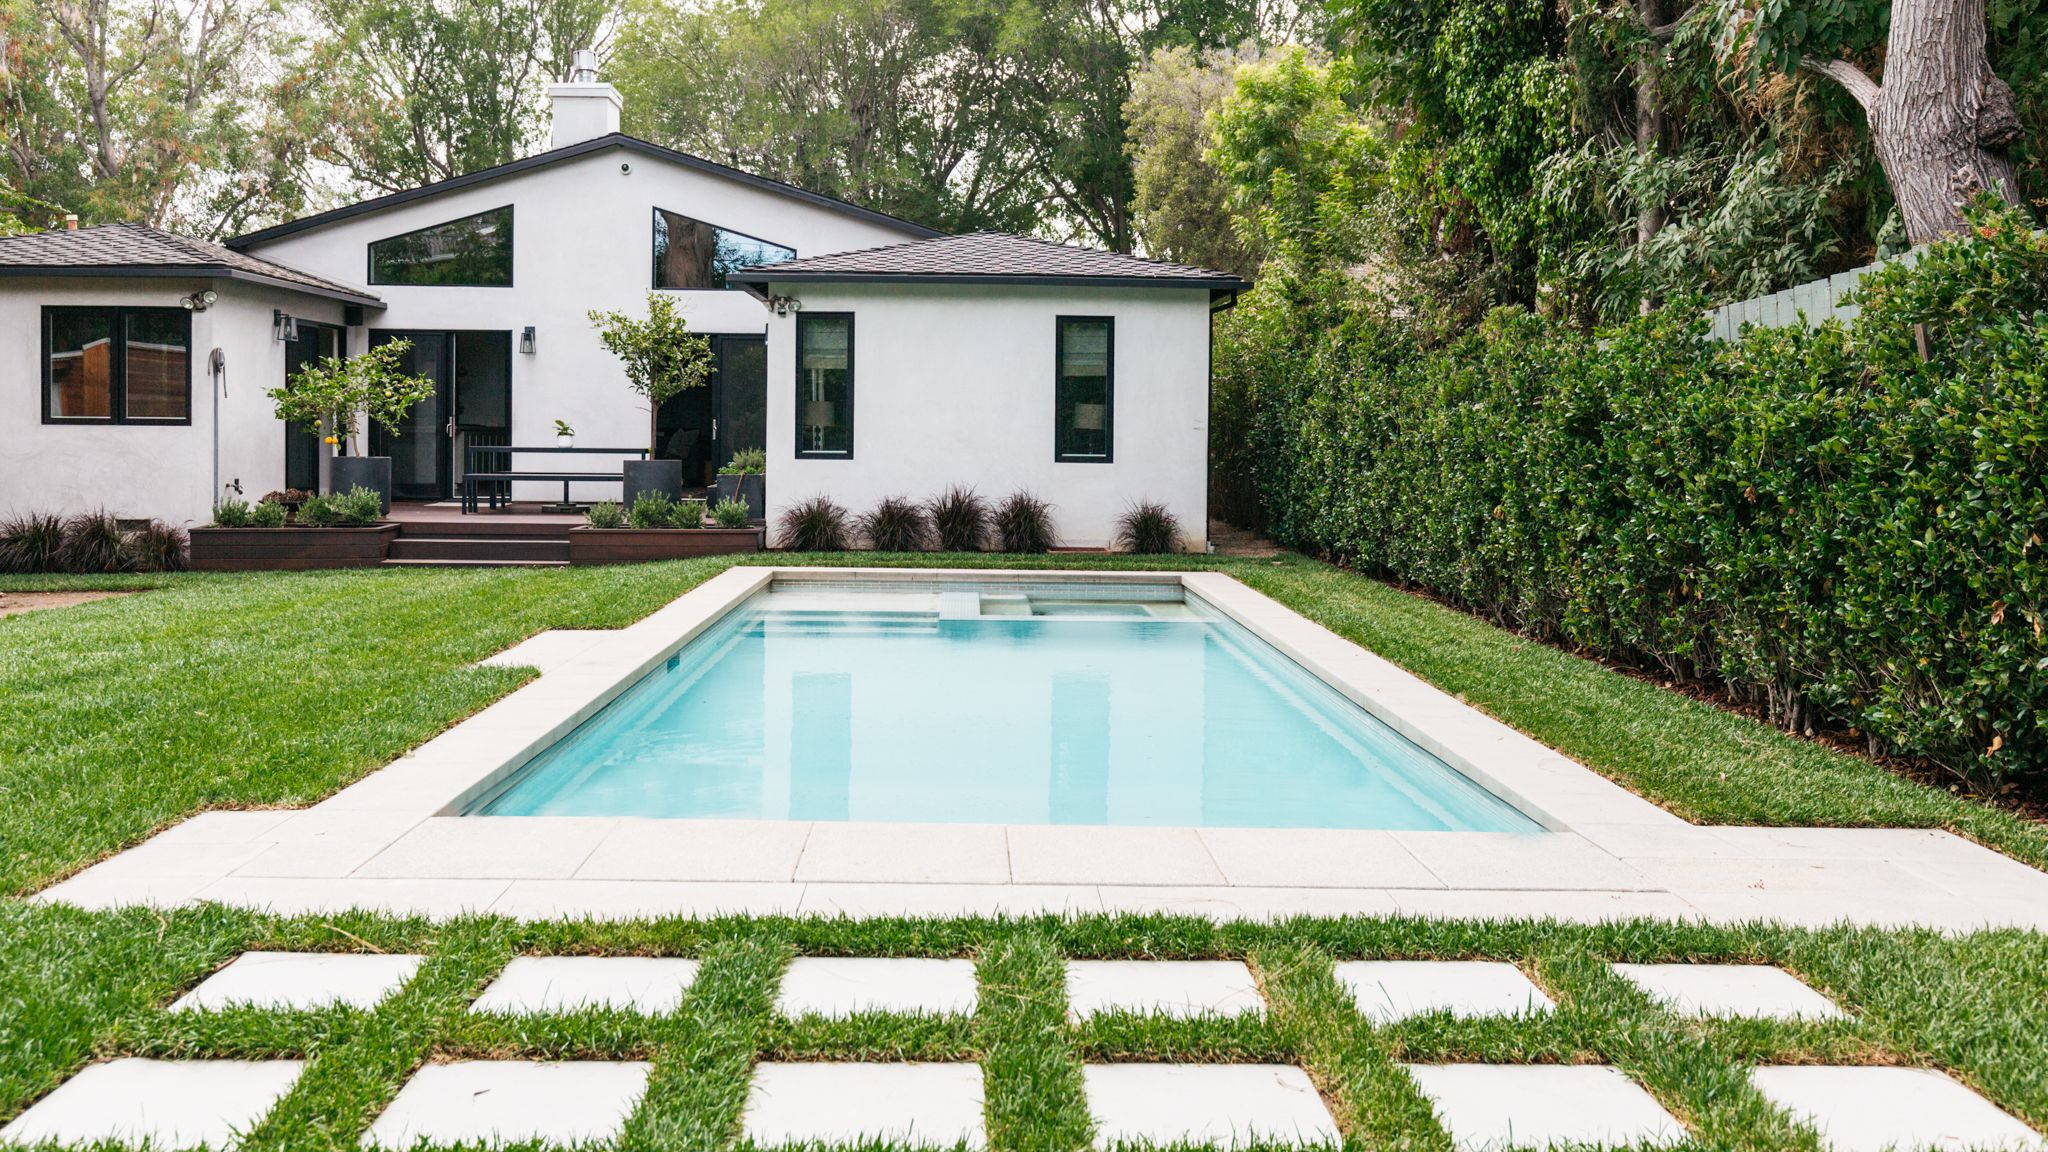 What Is the Best Type of Pool for Cold Climates?